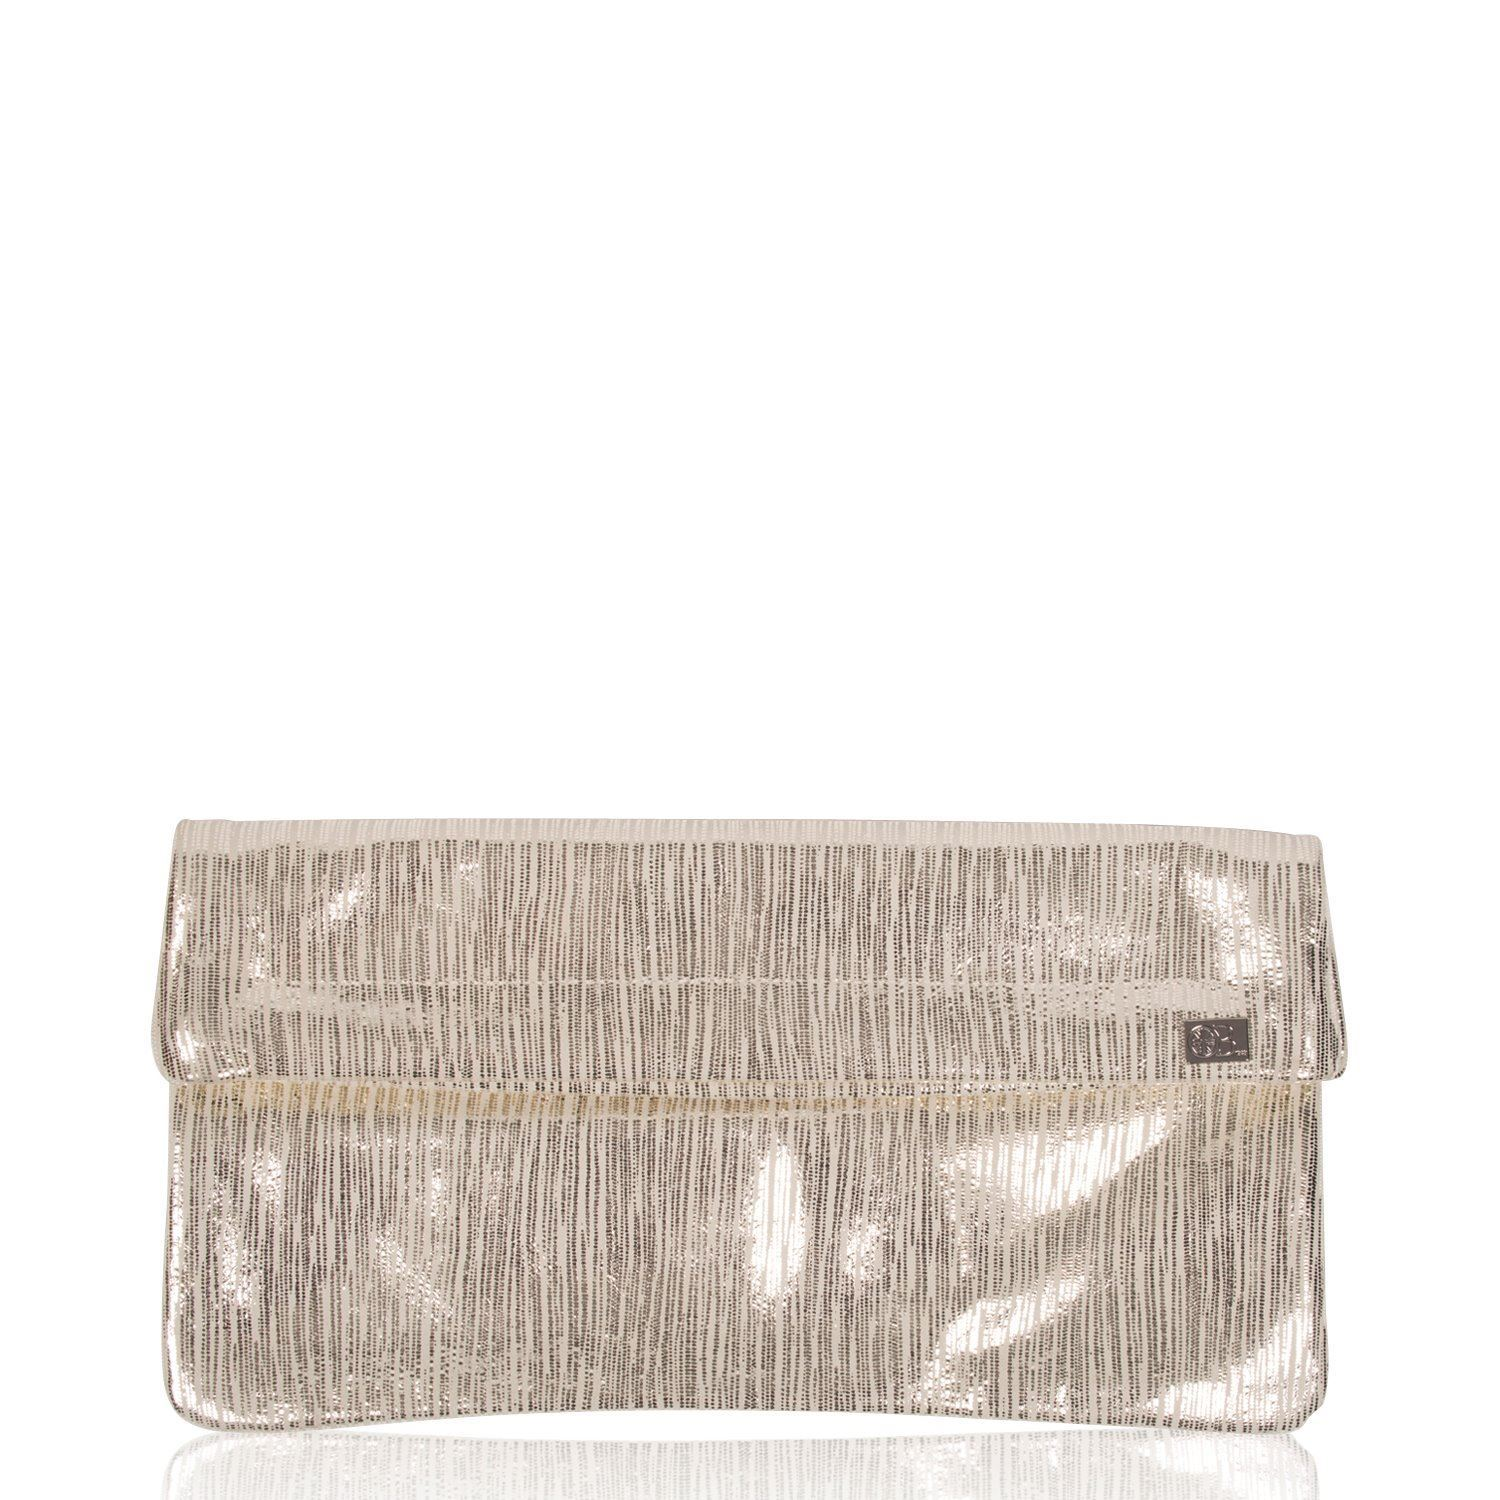 Leather Clutch Bag - Kings